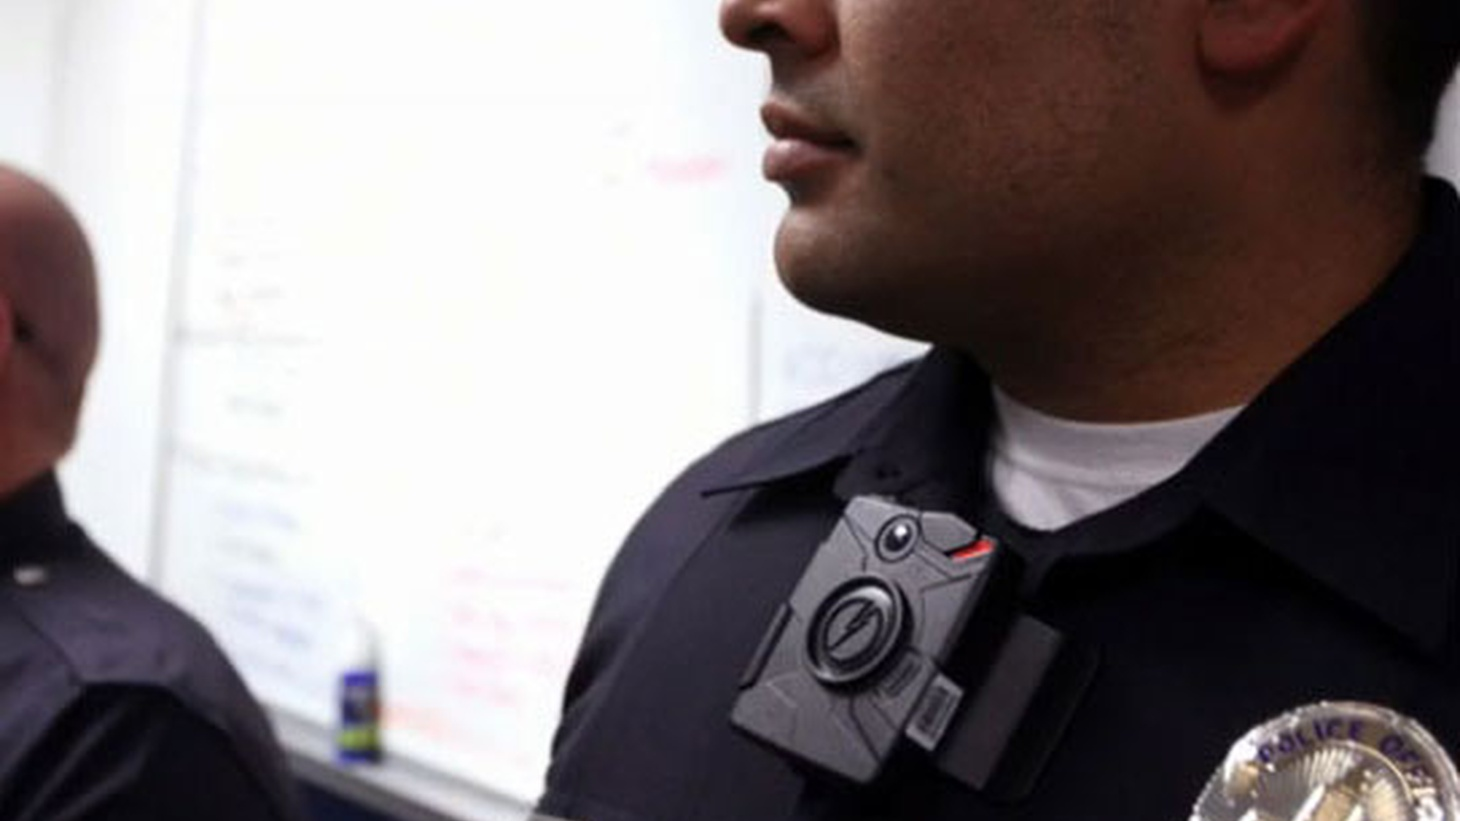 Next time a Los Angeles police officer talks to you, you might be on camera. By next year, 7,000 LA cops are expected to hit the streets with body cams.